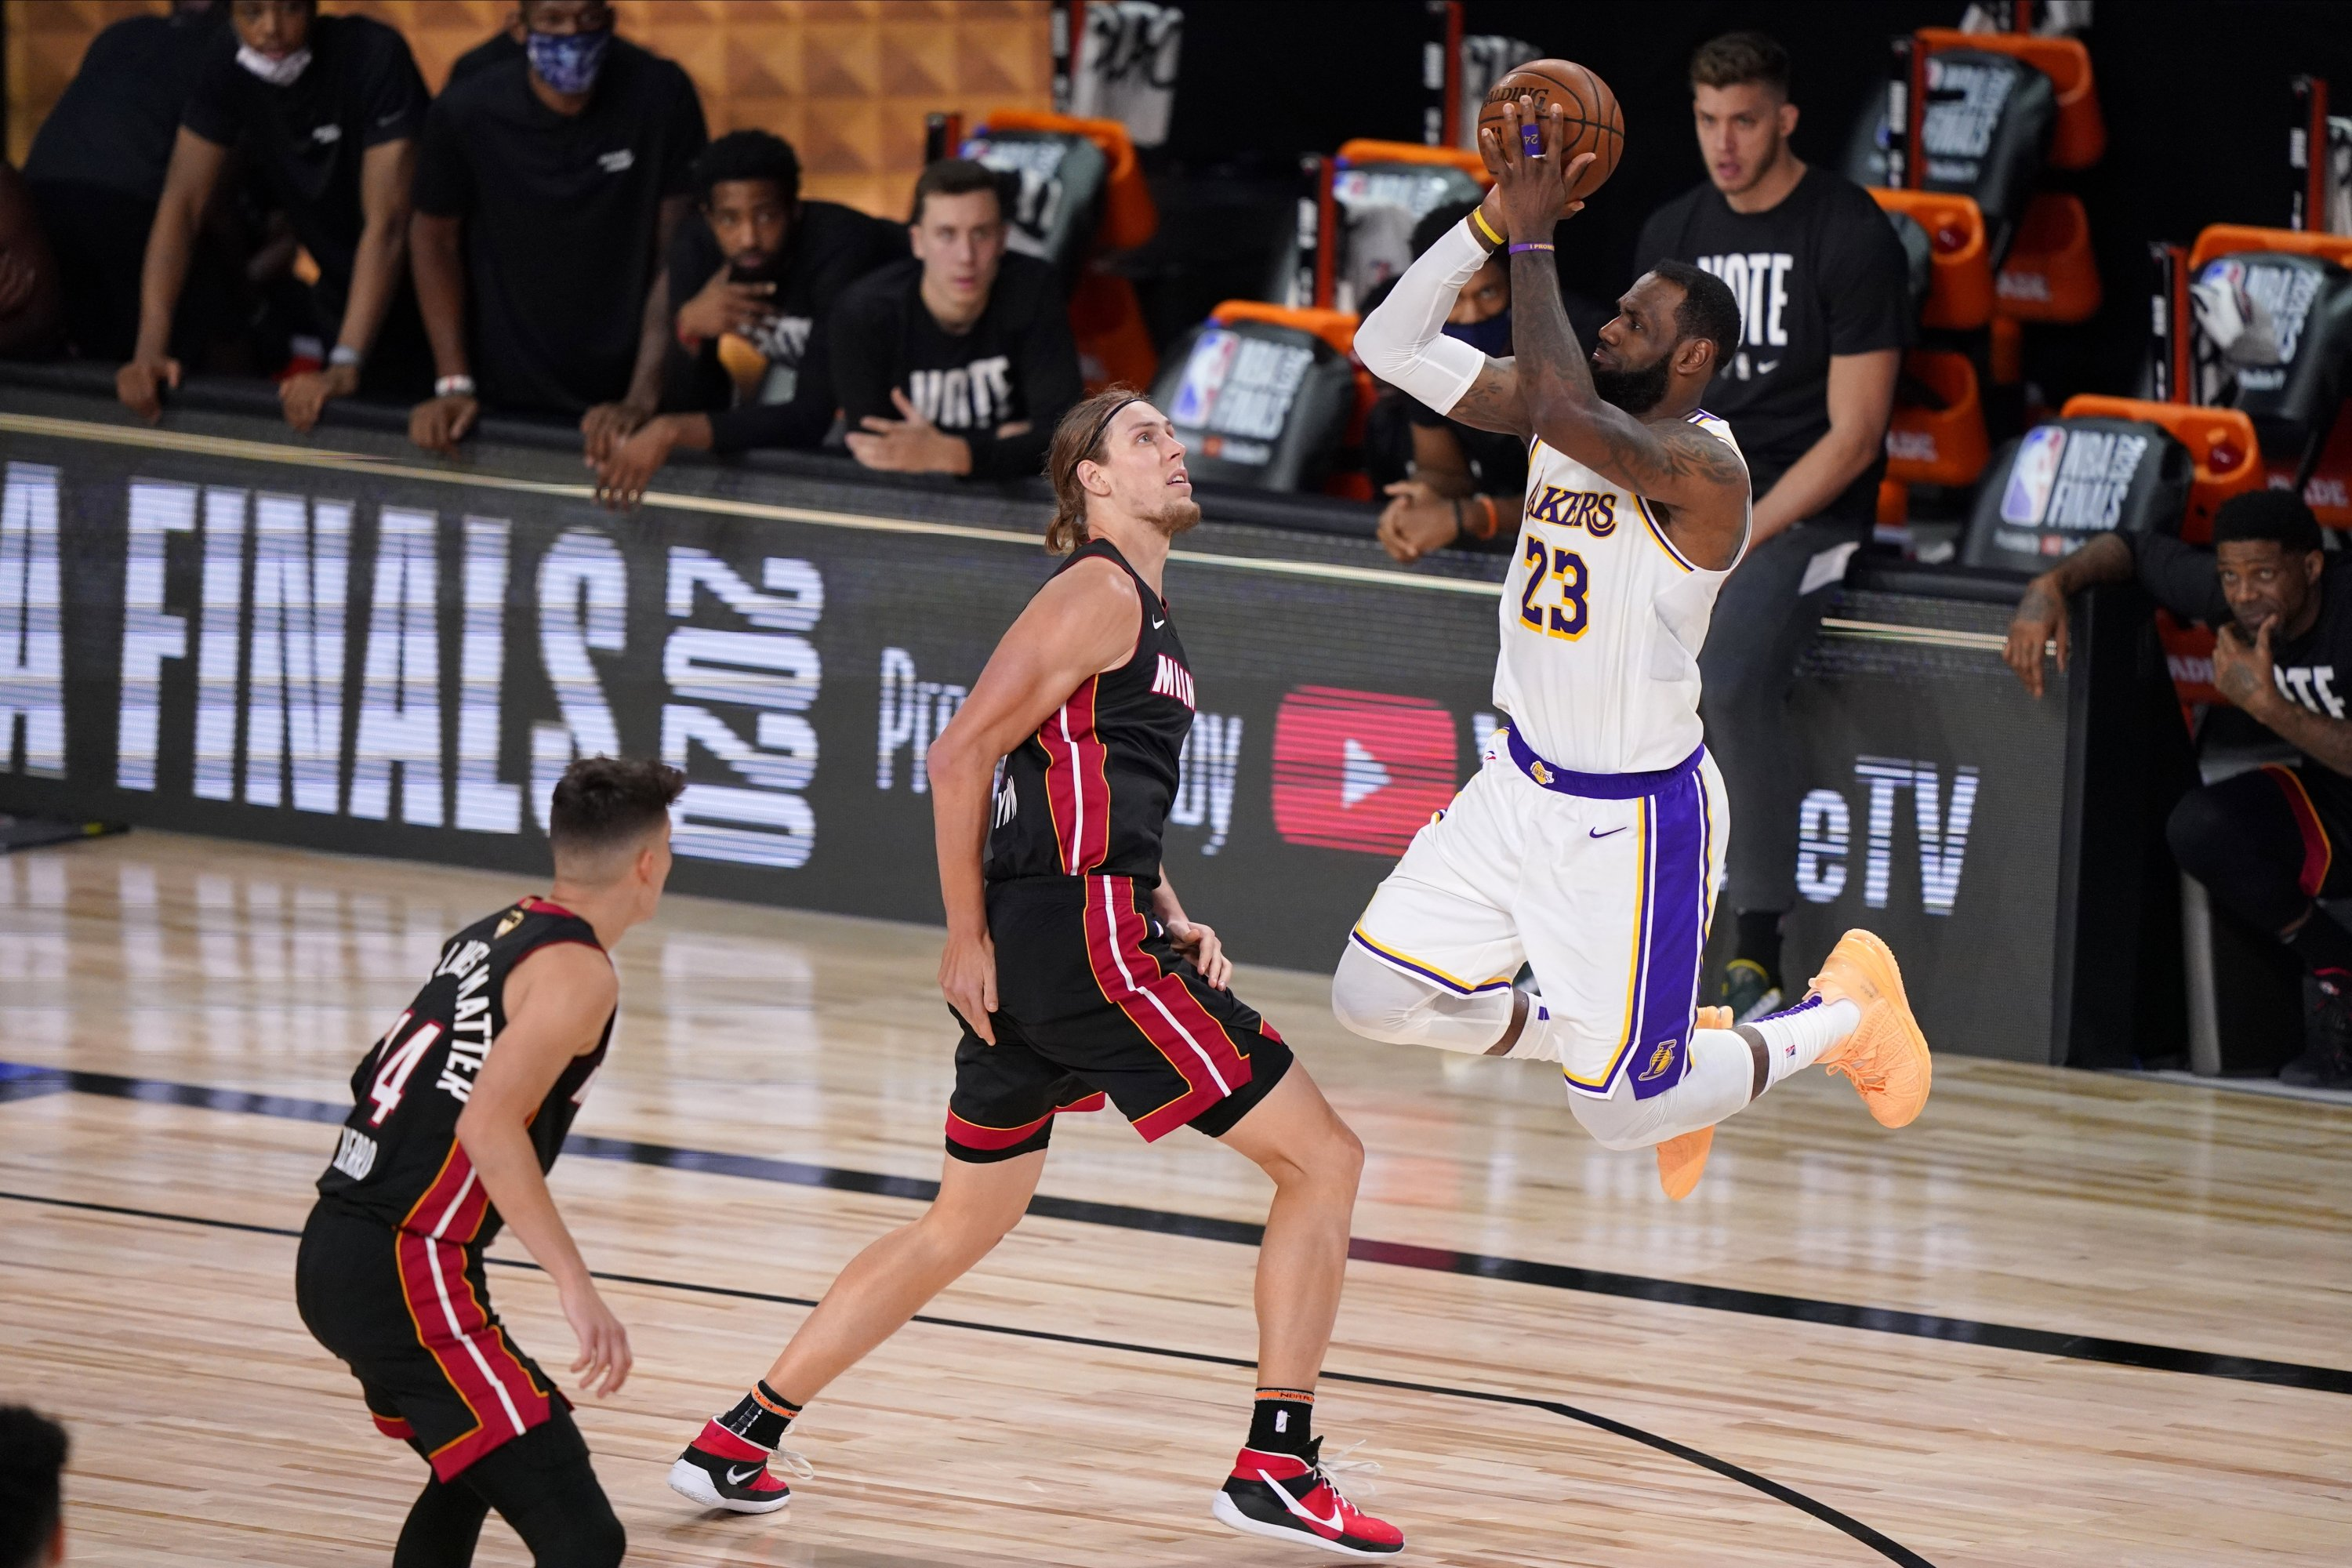 Los Angeles Lakers' LeBron James takes a shot over Miami Heat's Kelly Olynyk during the Game 6 of NBA Finals, in Lake Buena Vista, Florida, U.S., Oct. 11, 2020. (AP Photo)